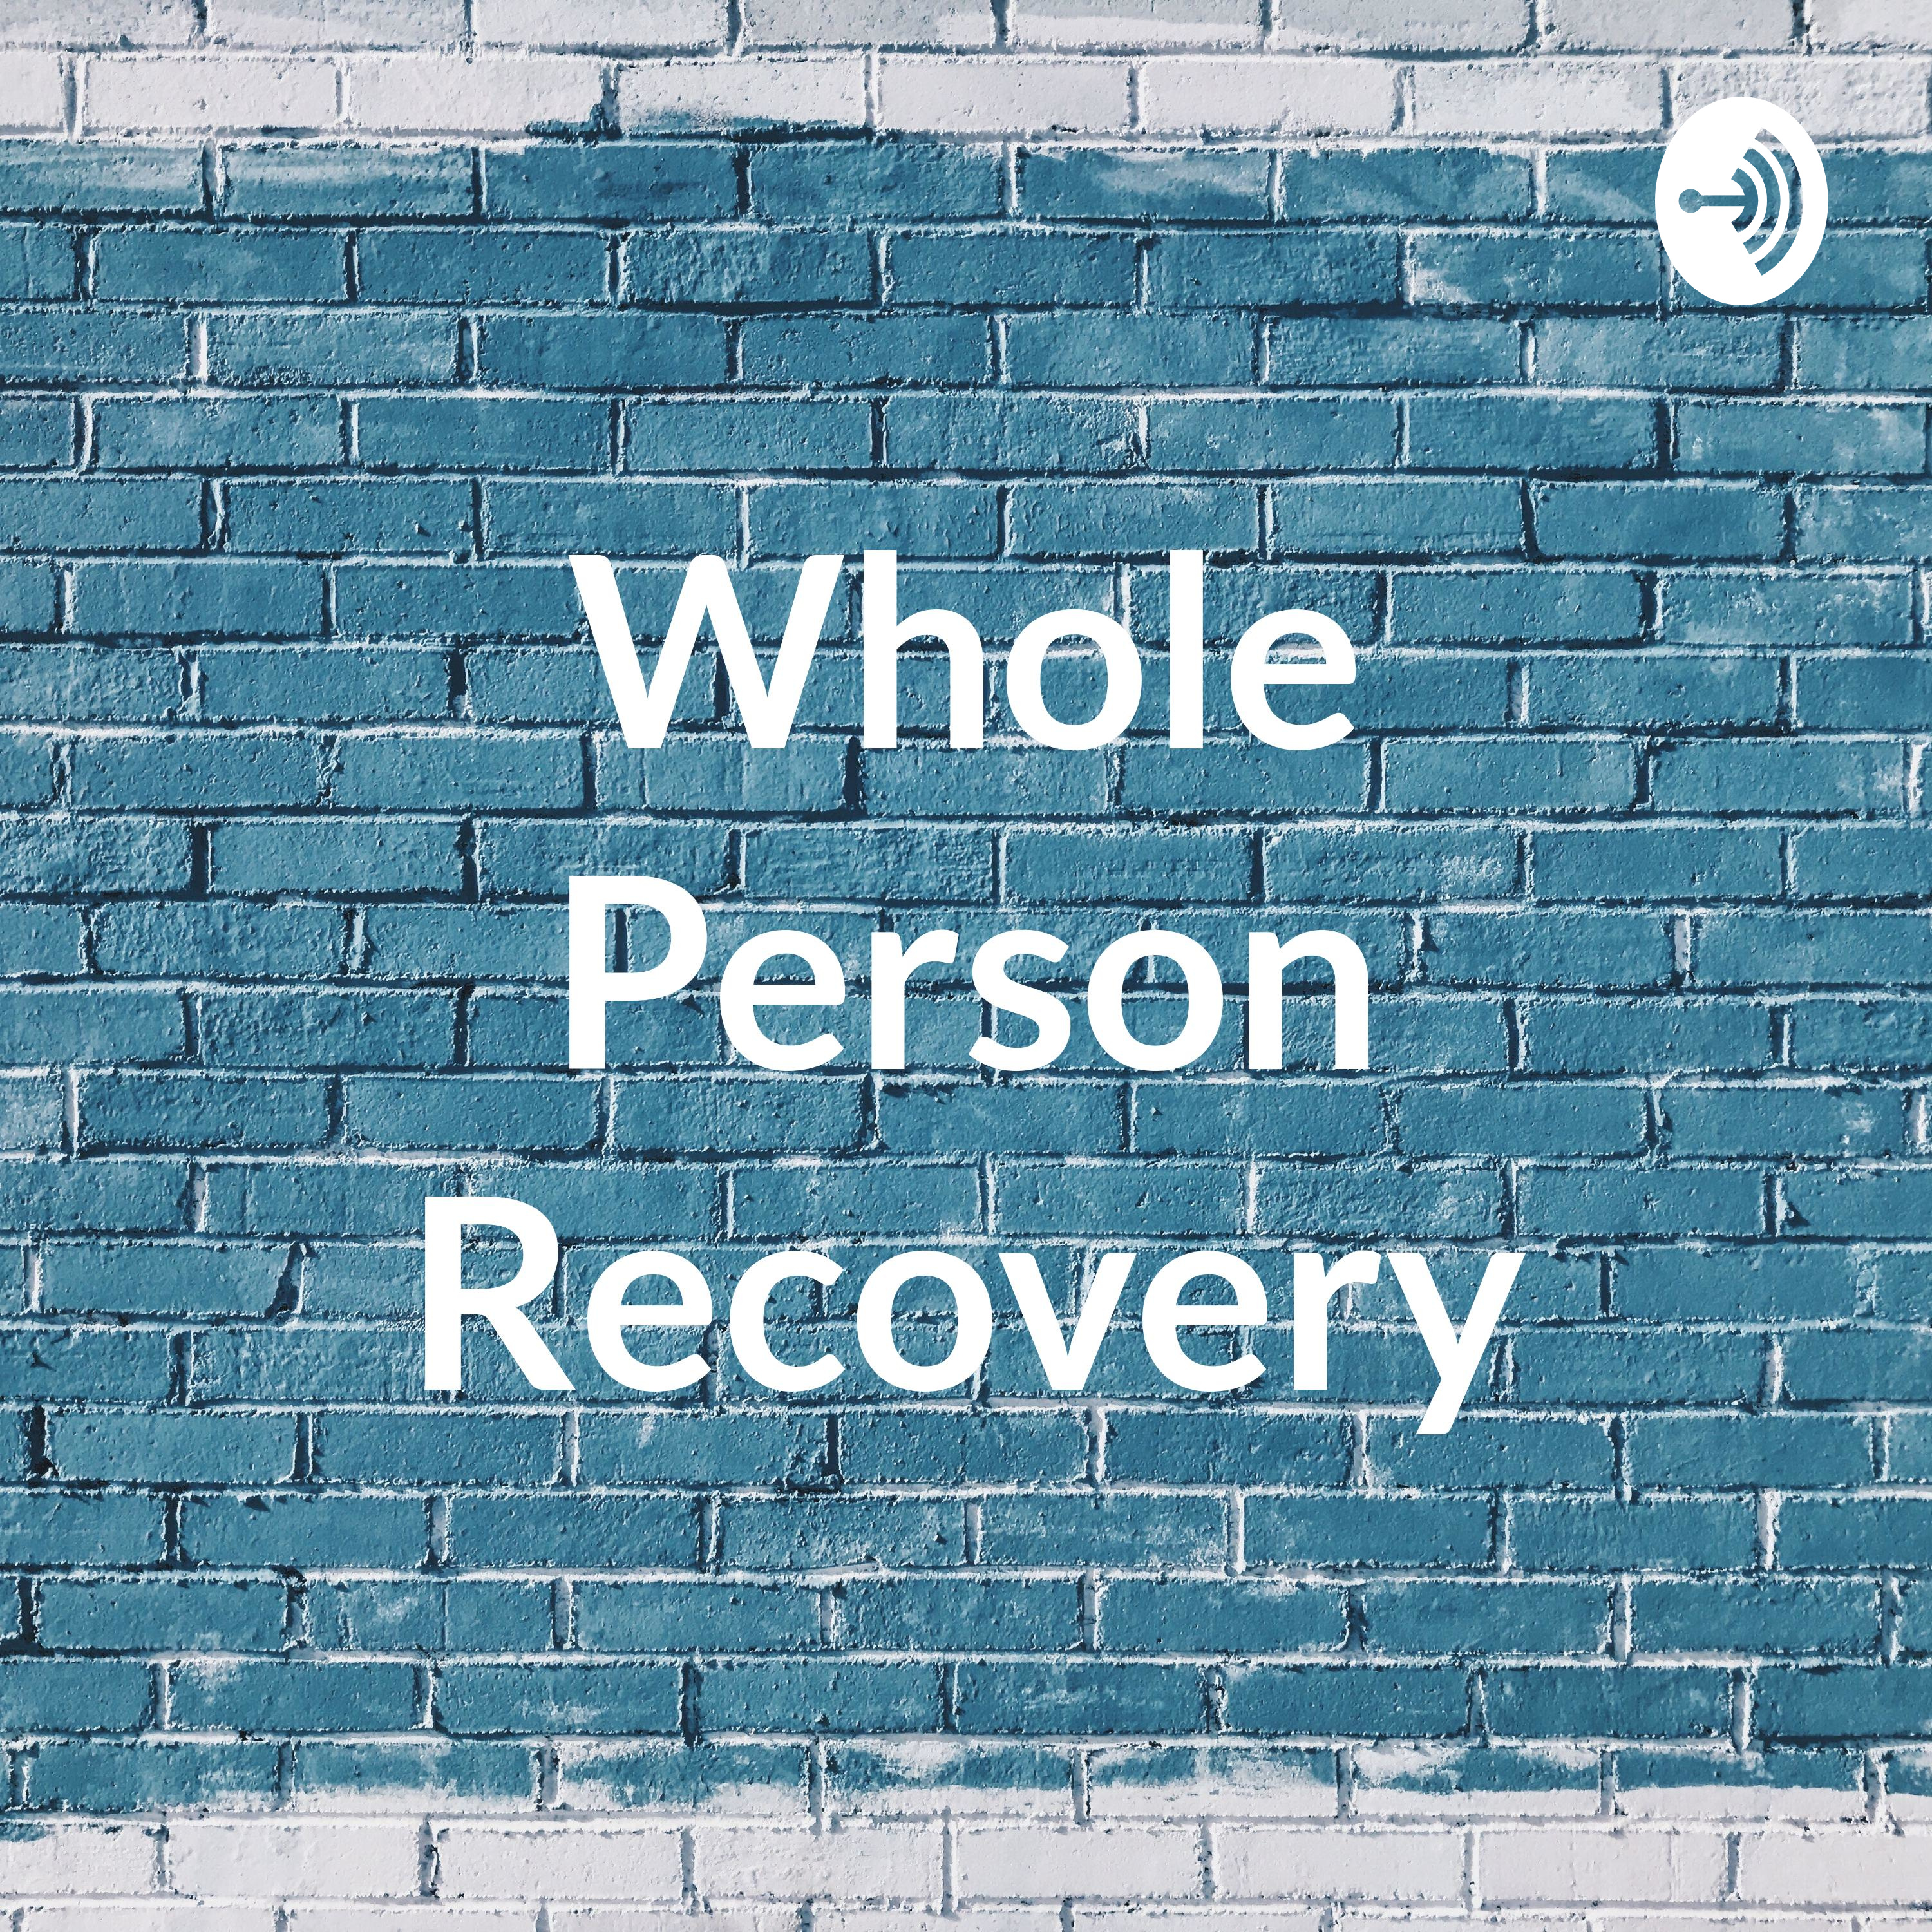 Whole Person Recovery